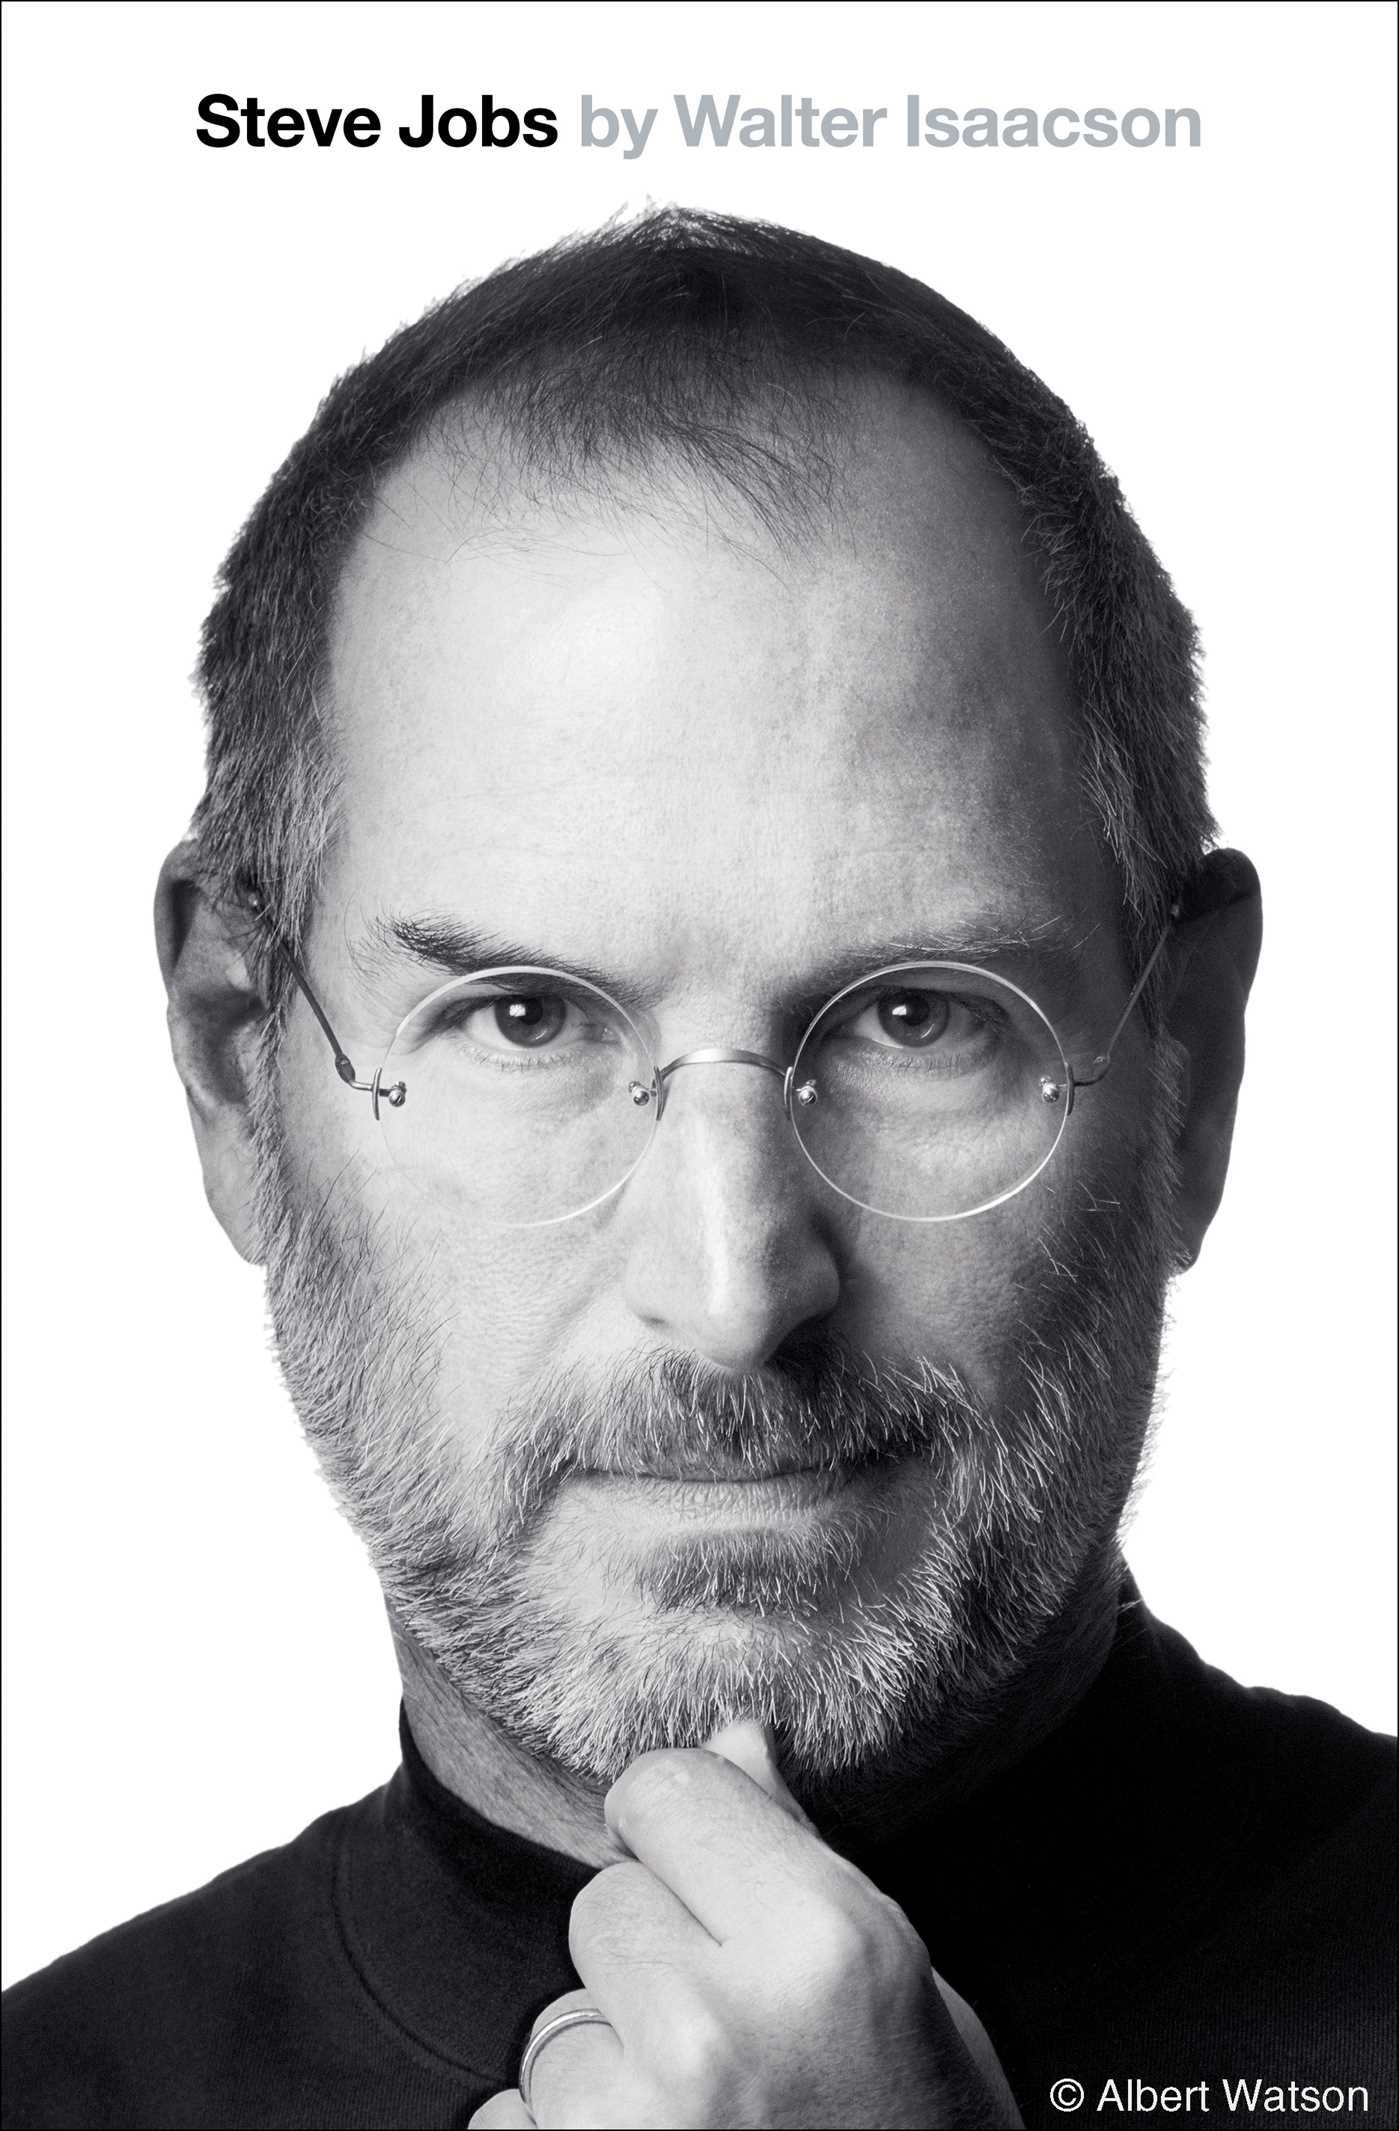 book review steve jobs walter isaacson  walter isaacson has done an admirable job of trying to tackle such a complicated biographical subject the book explores in some detail jobs s early career